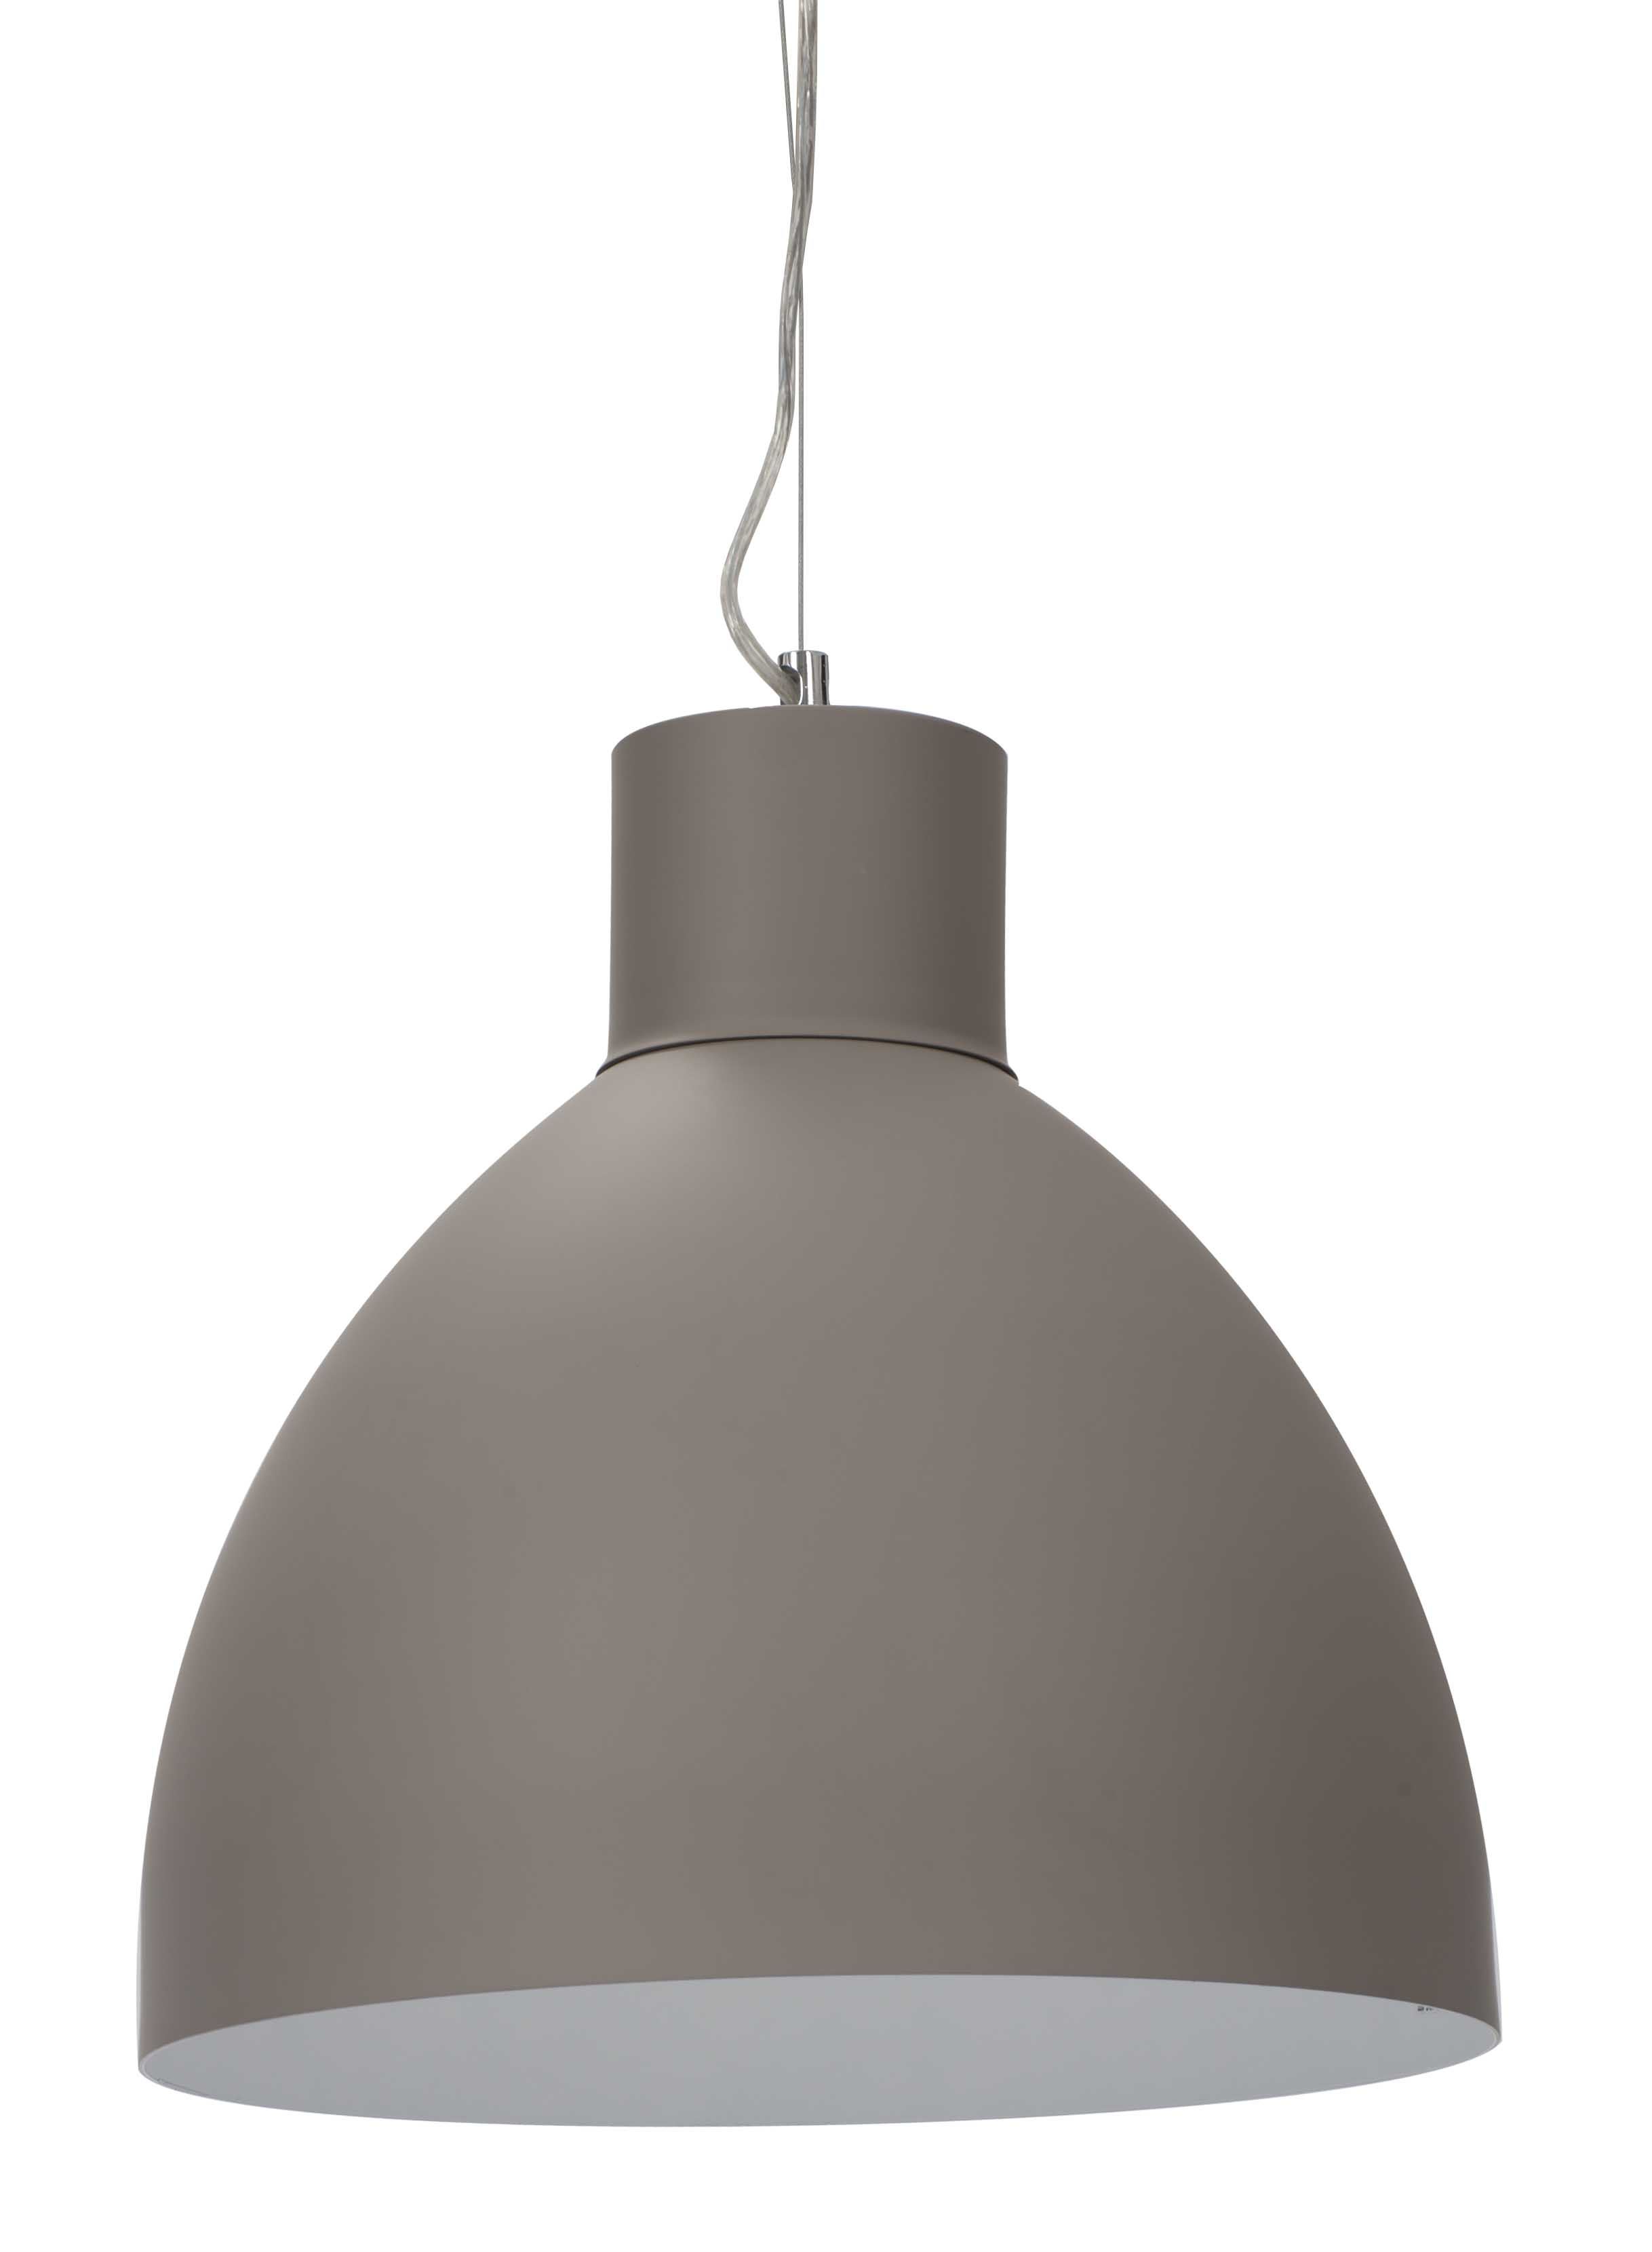 Contrast Hanging Lamp pr home : contrastlamp grey from www.prhome.co.uk size 2436 x 3321 jpeg 170kB